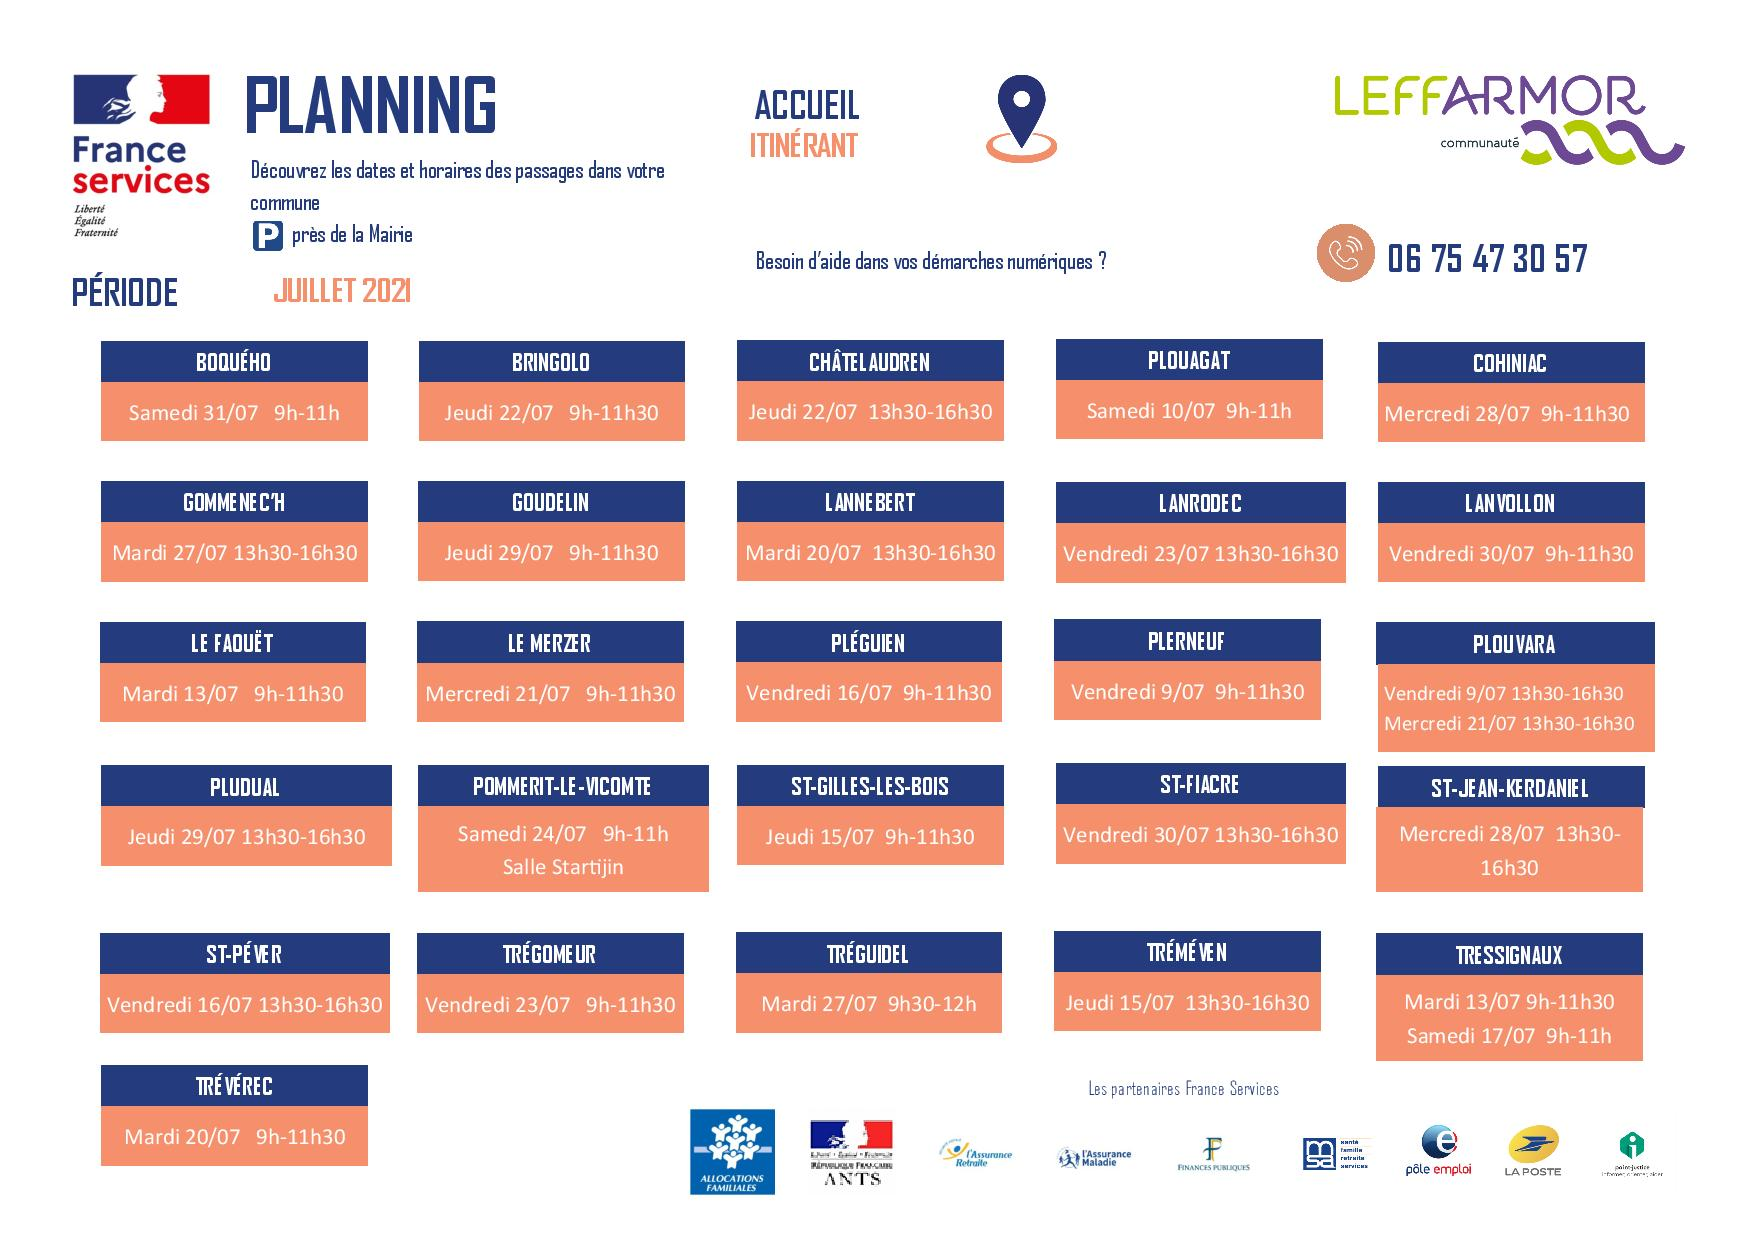 Planning France Services itinérant-page-001.jpg